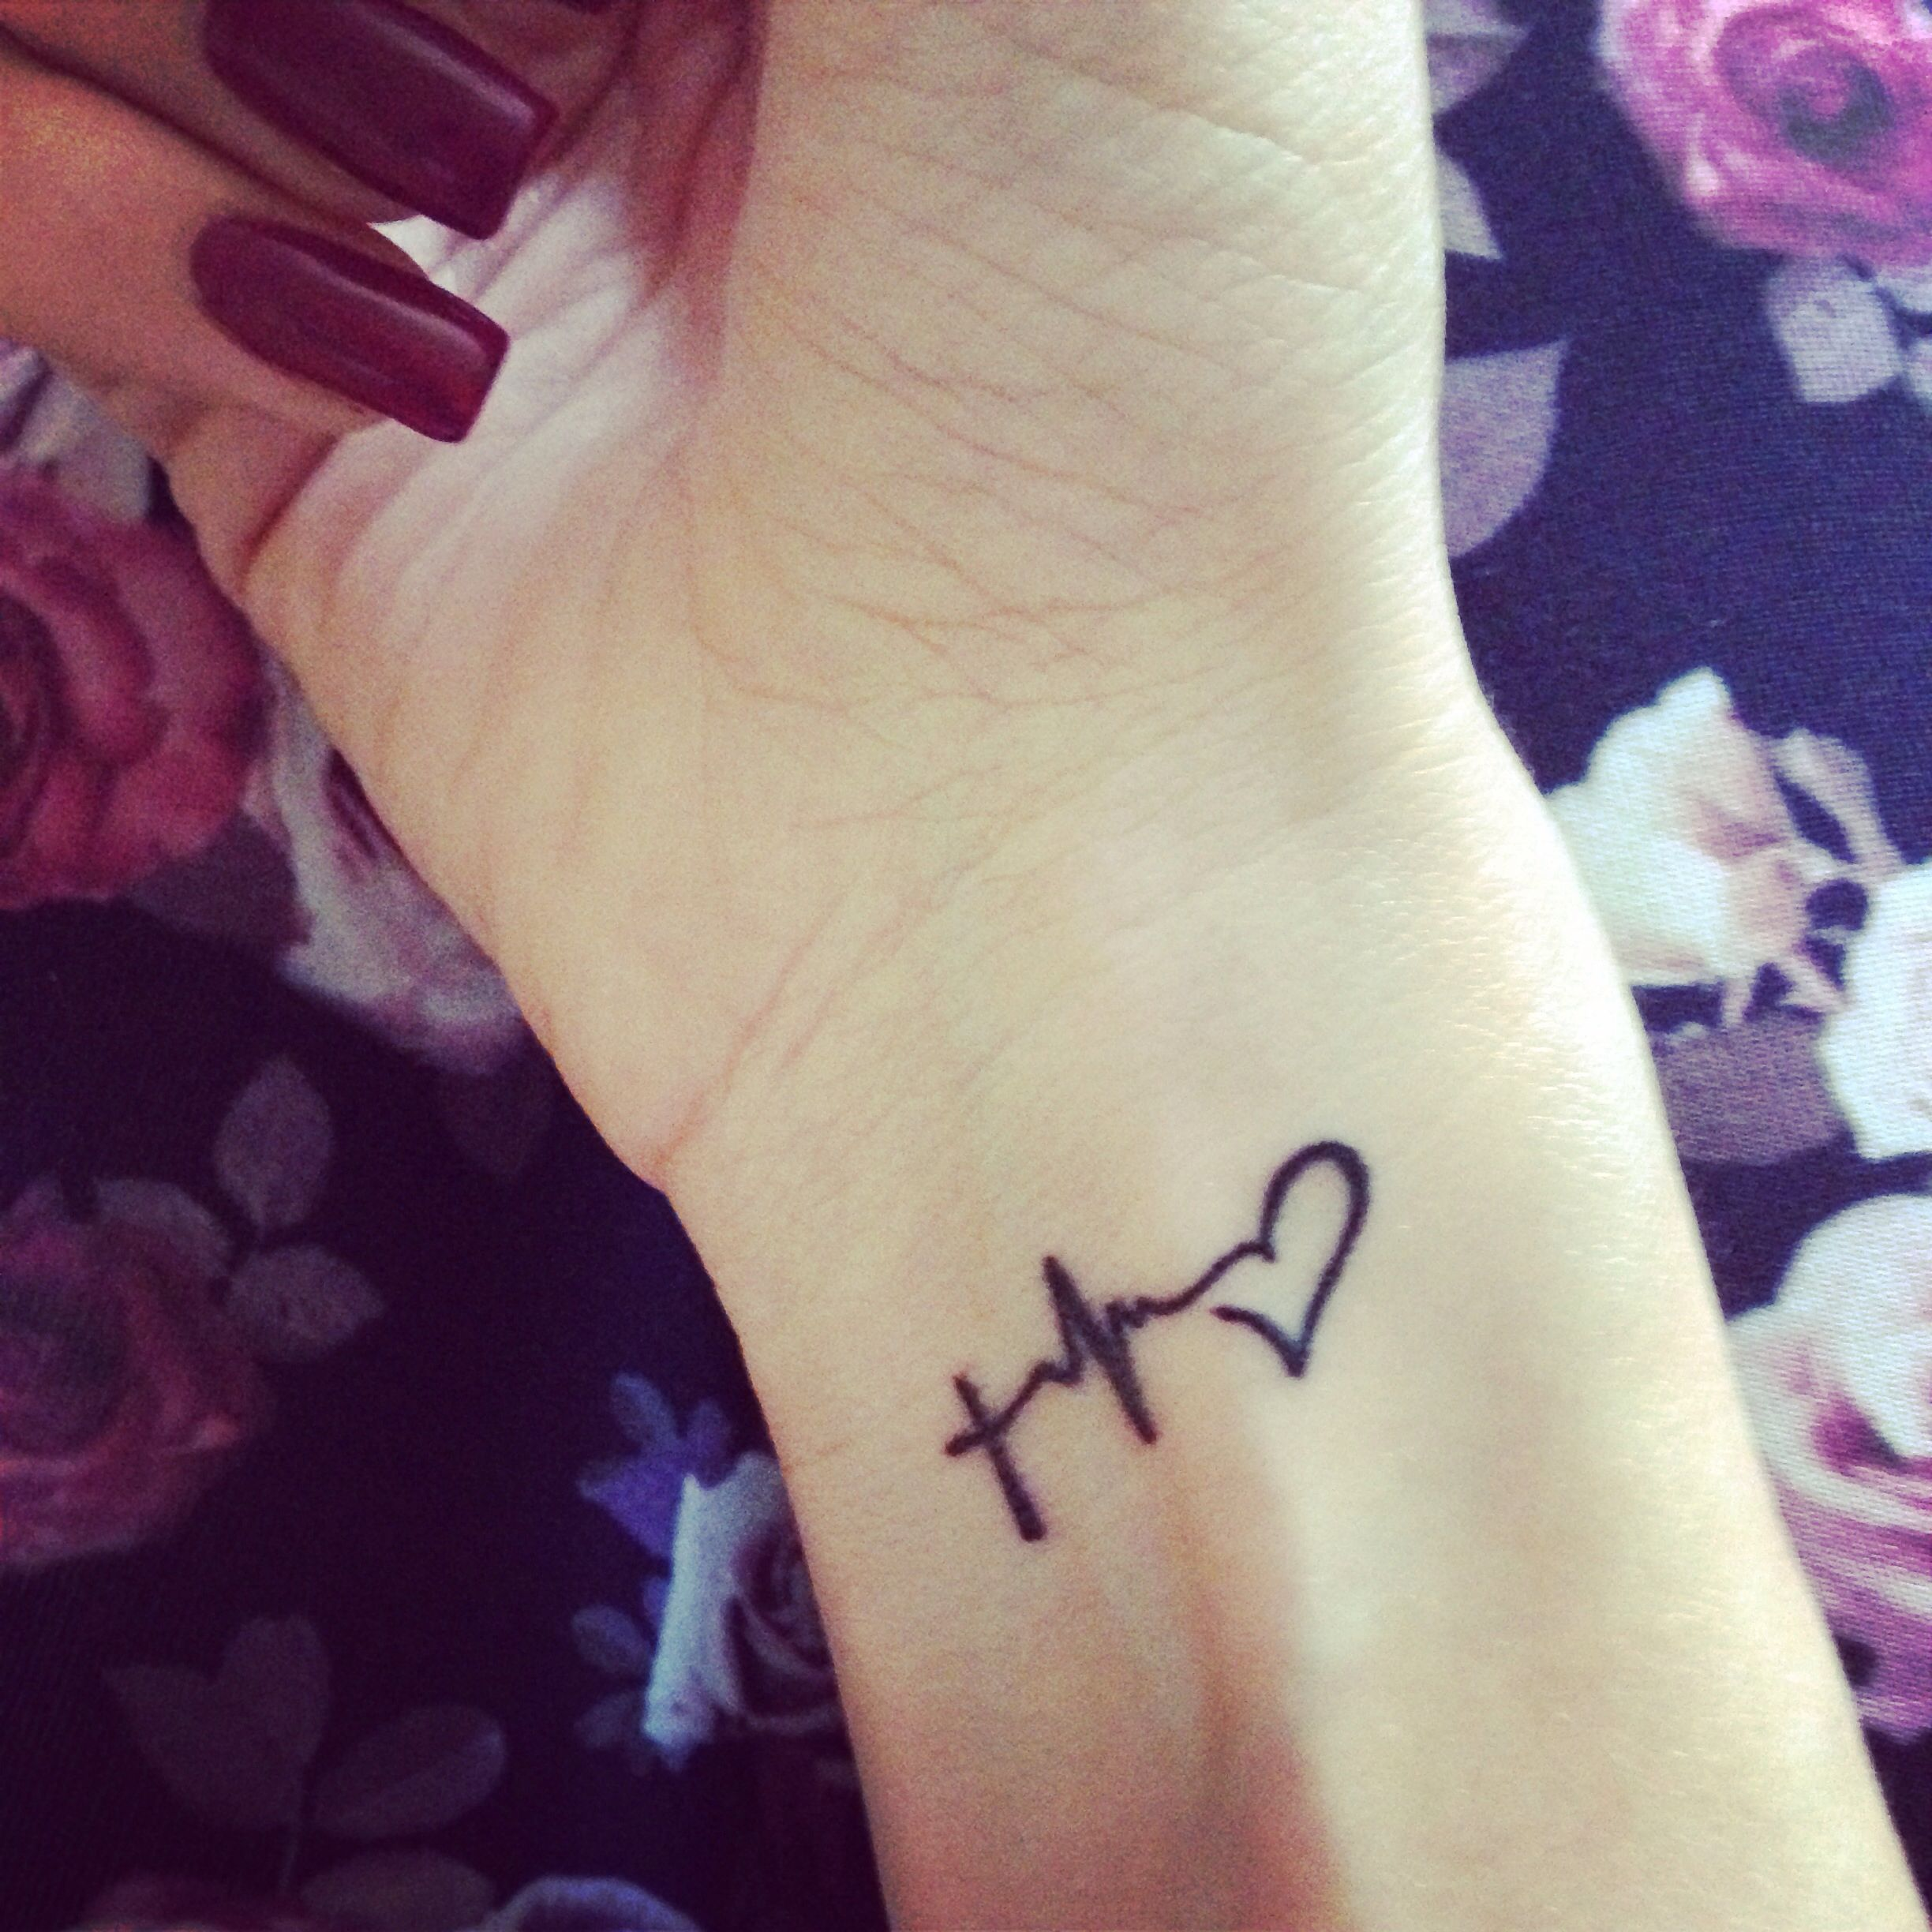 Small tattoo on wrist: faith, hope, love | Tattoos | Pinterest